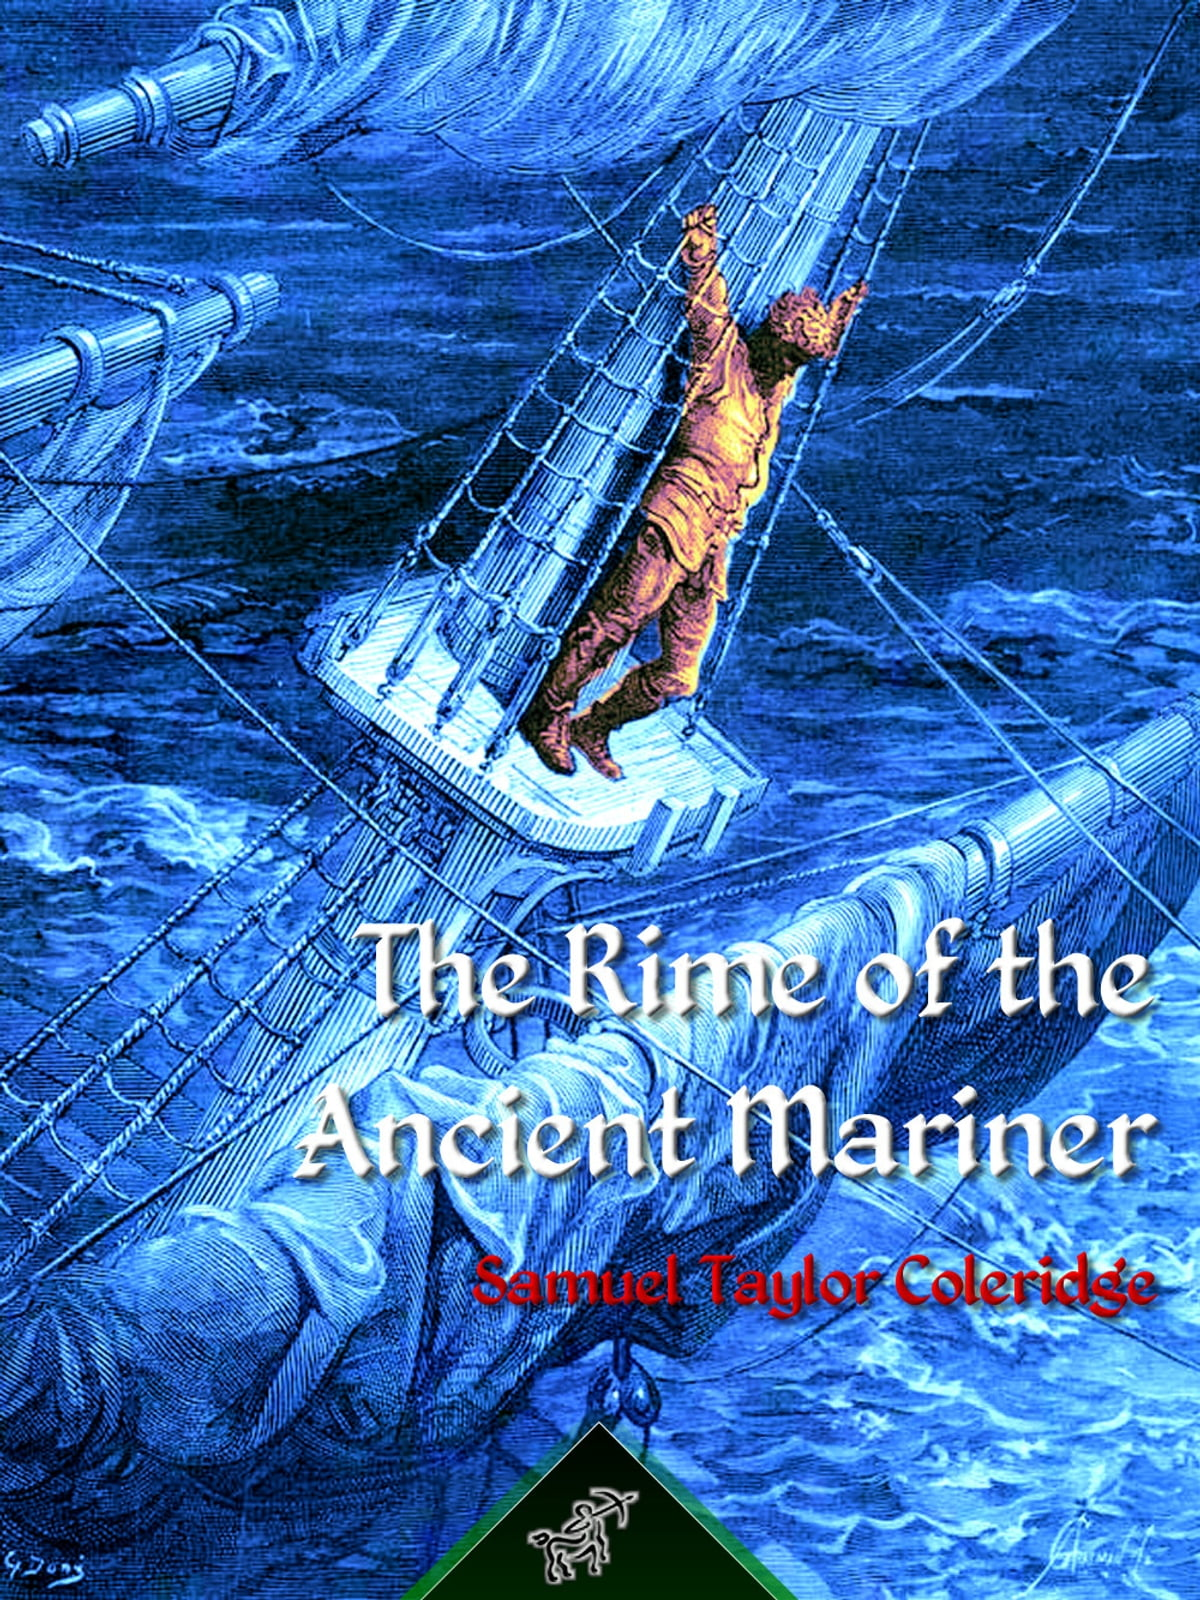 Search Essays In English The Rime Of The Ancient Mariner Ebook By Samuel Taylor Coleridge     Rakuten Kobo Compare And Contrast Essay High School Vs College also The Thesis Statement In A Research Essay Should The Rime Of The Ancient Mariner Ebook By Samuel Taylor Coleridge  Essays On Different Topics In English